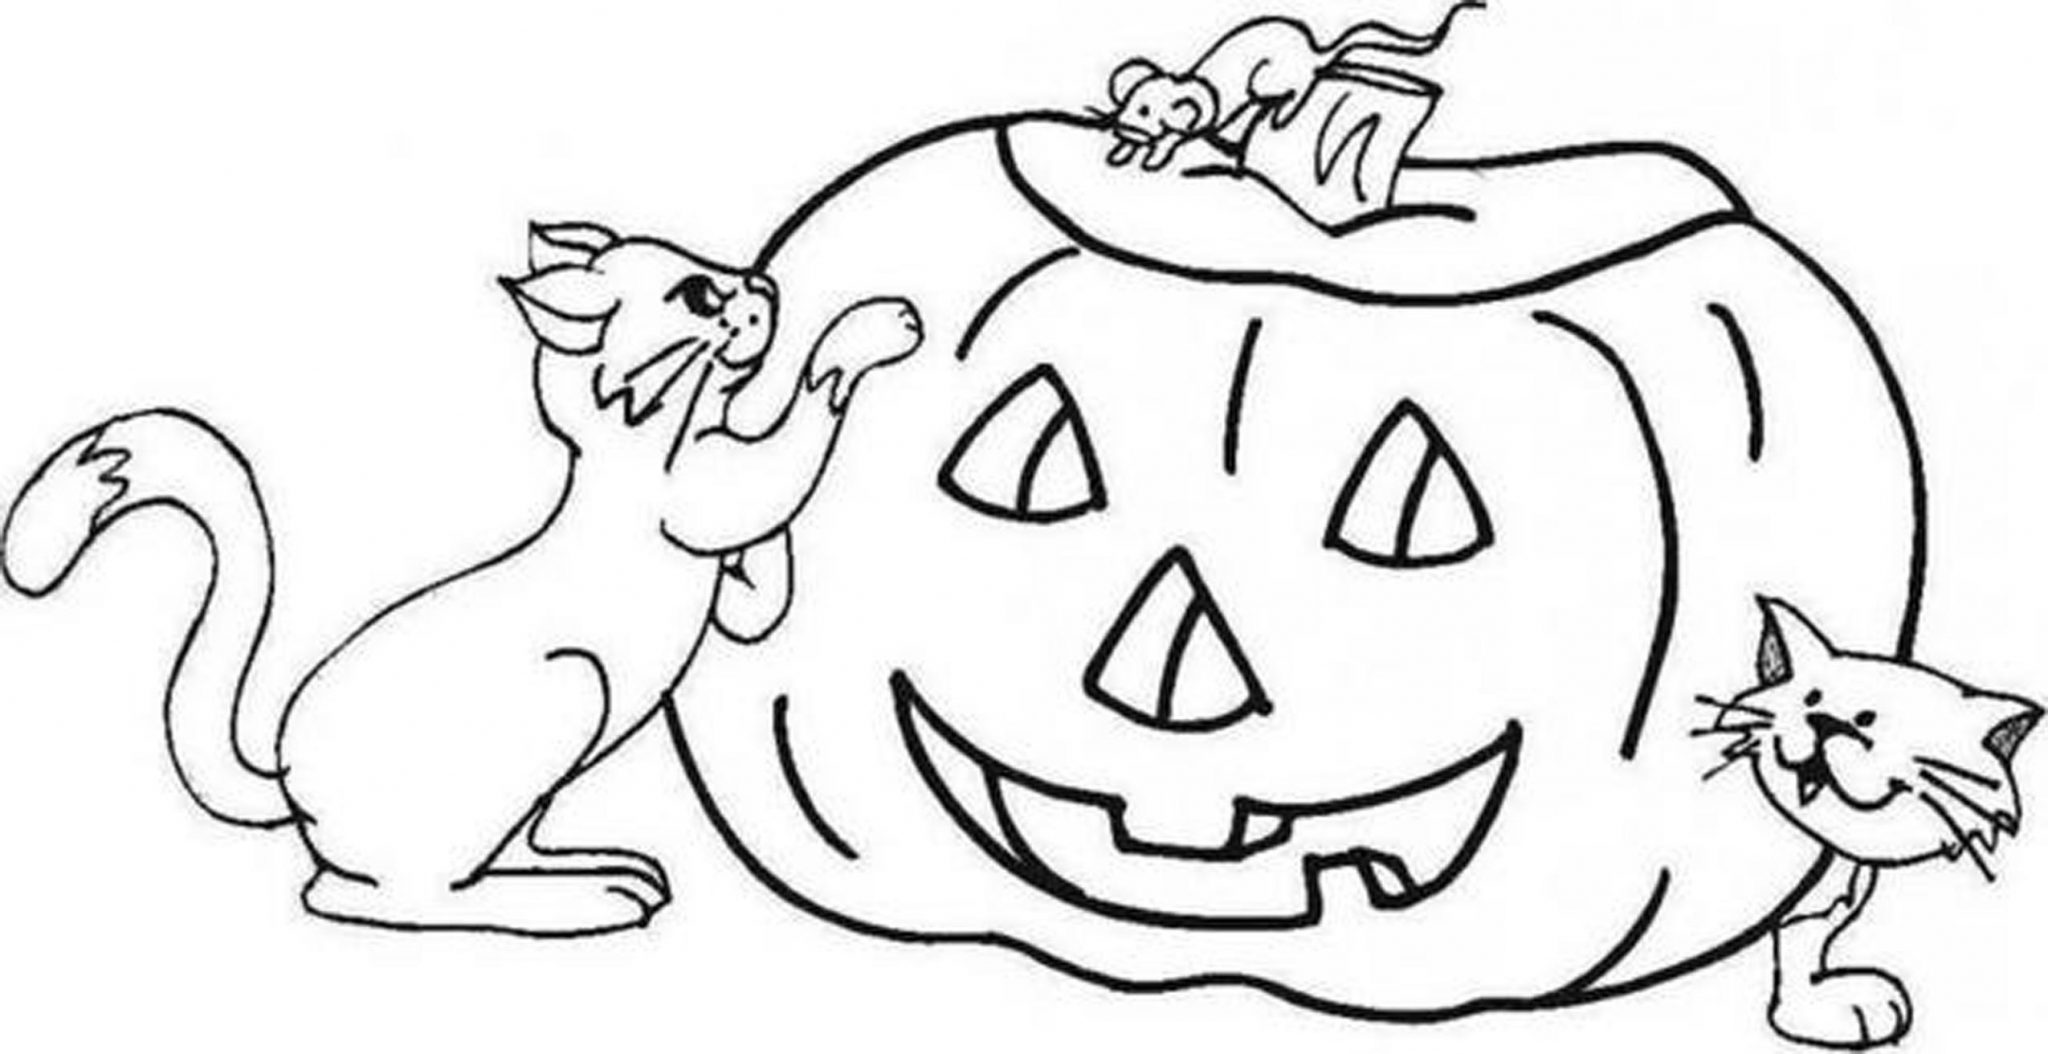 pumpking coloring pages 30 free printable pumpkin coloring pages scribblefun pumpking pages coloring